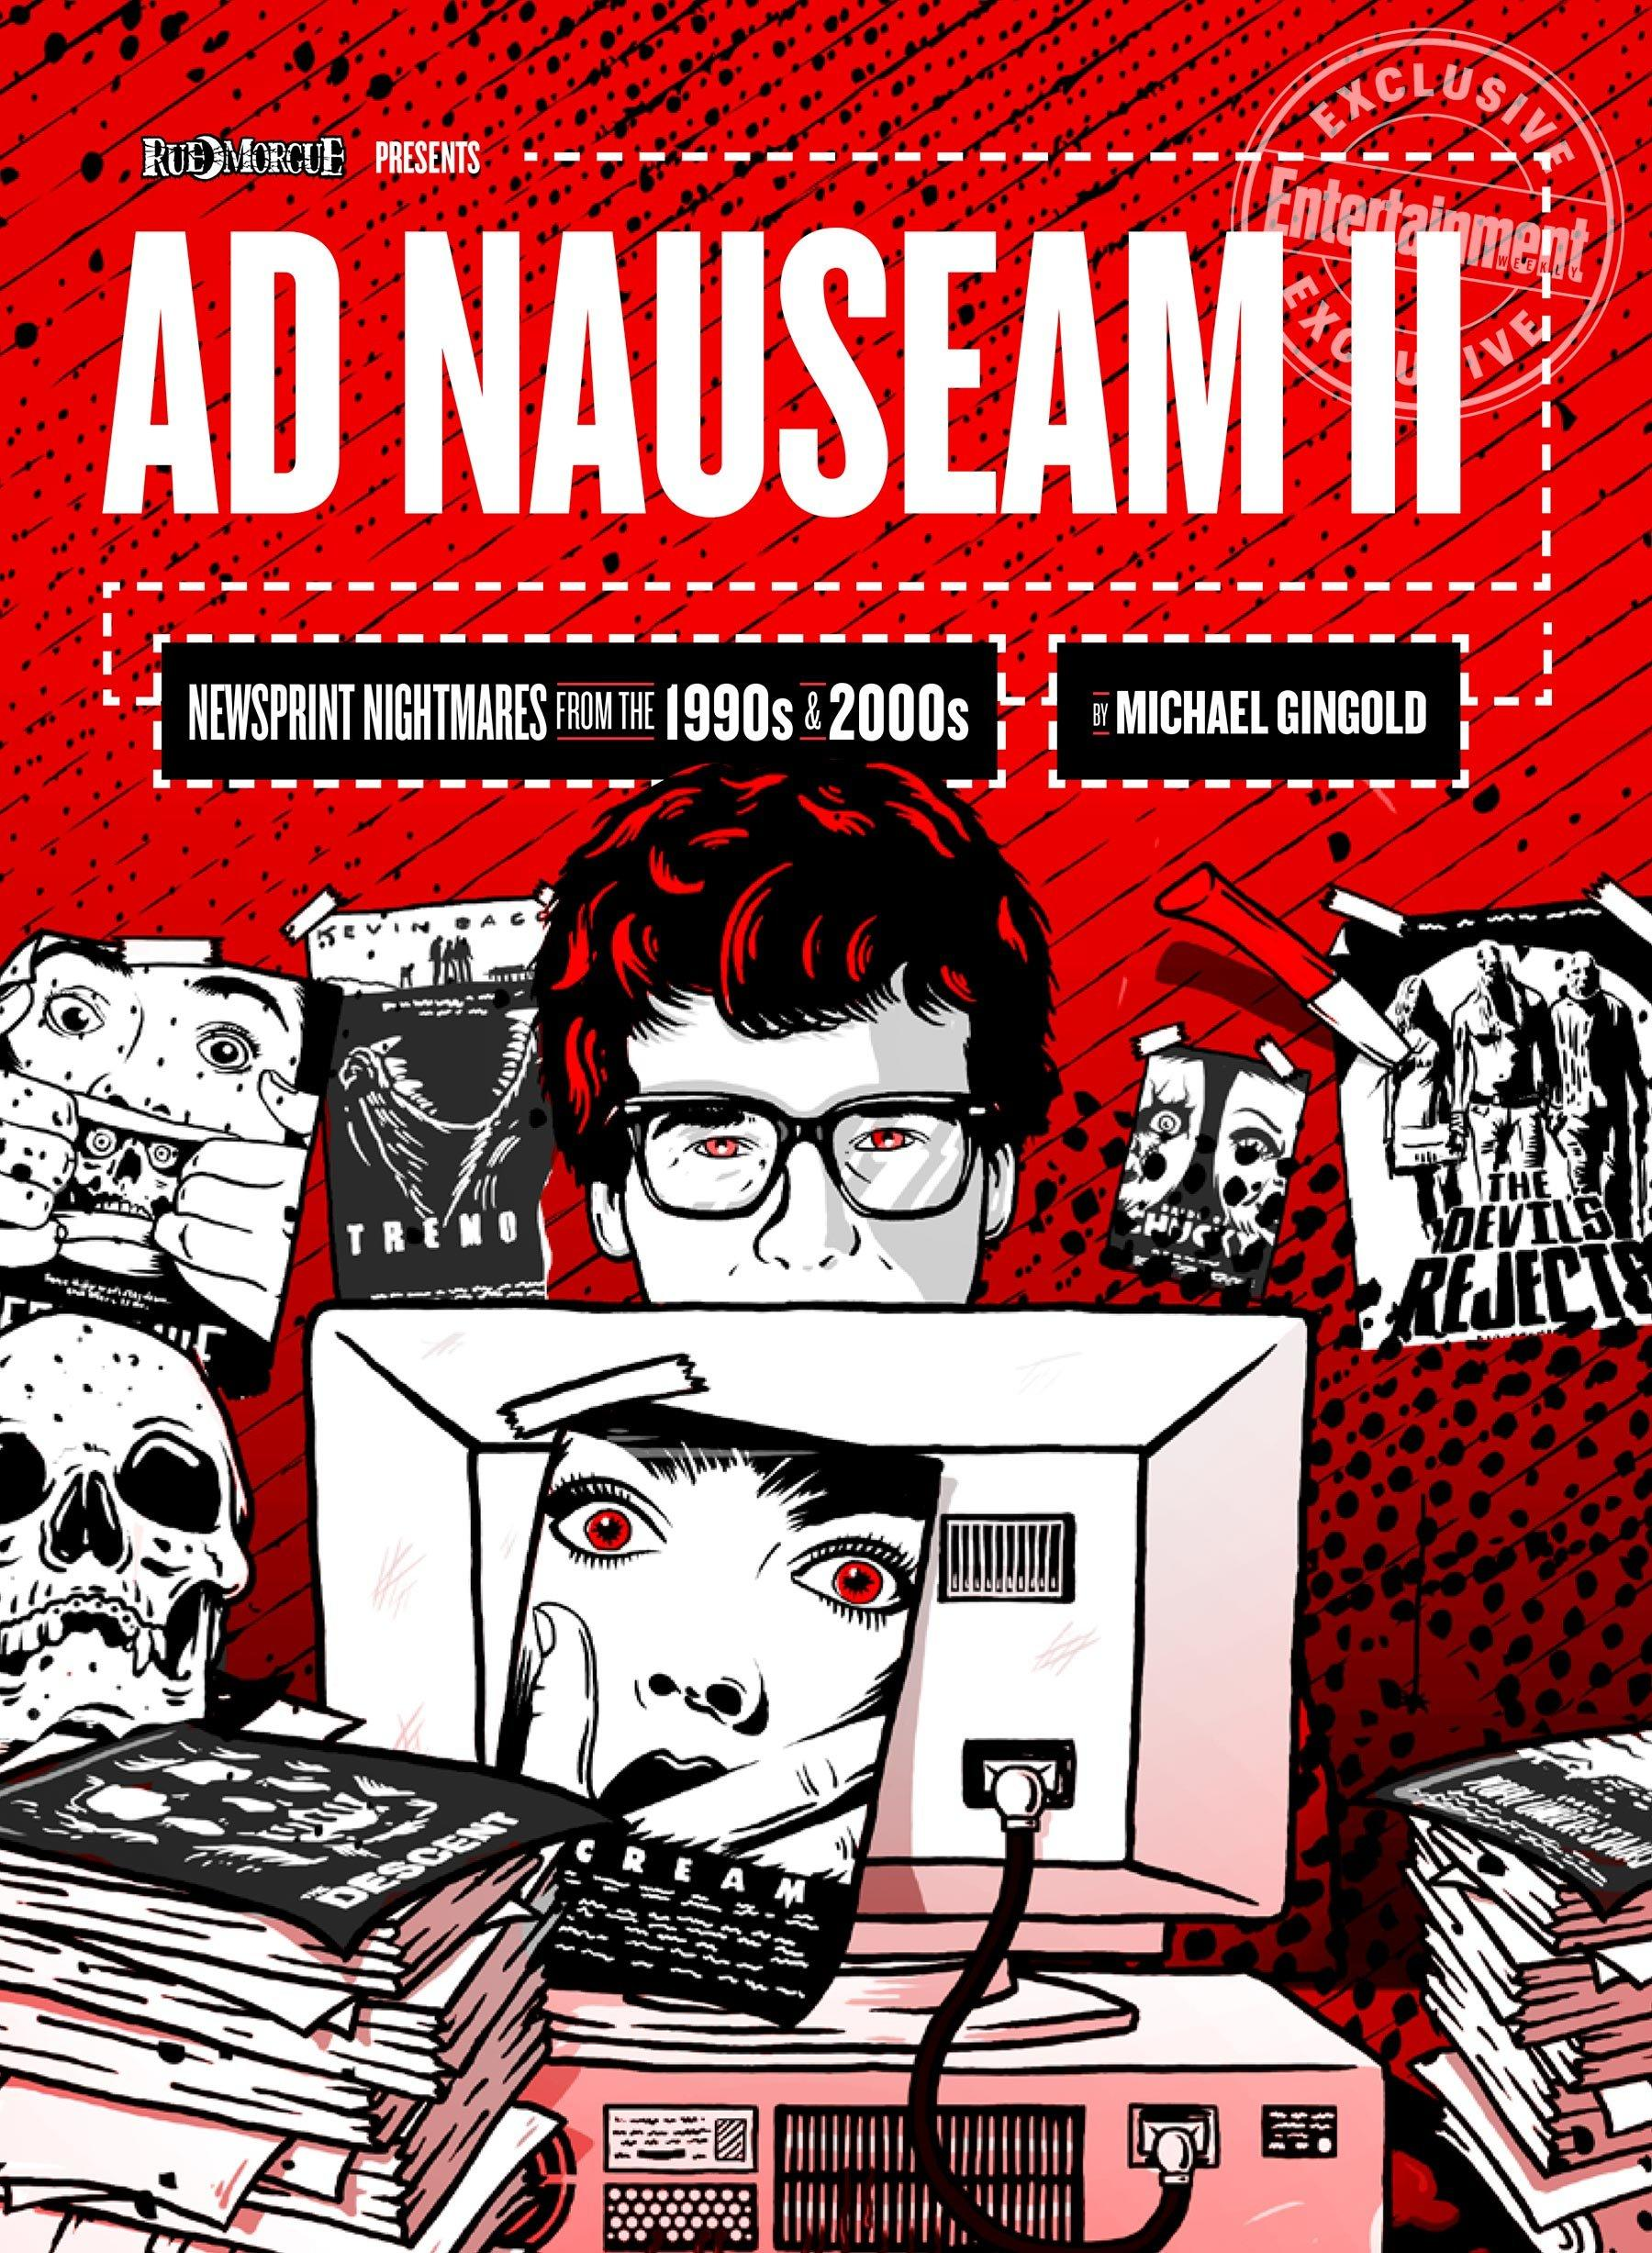 Ad Nauseam II to feature over 500 vintage newspaper ads for '90s and